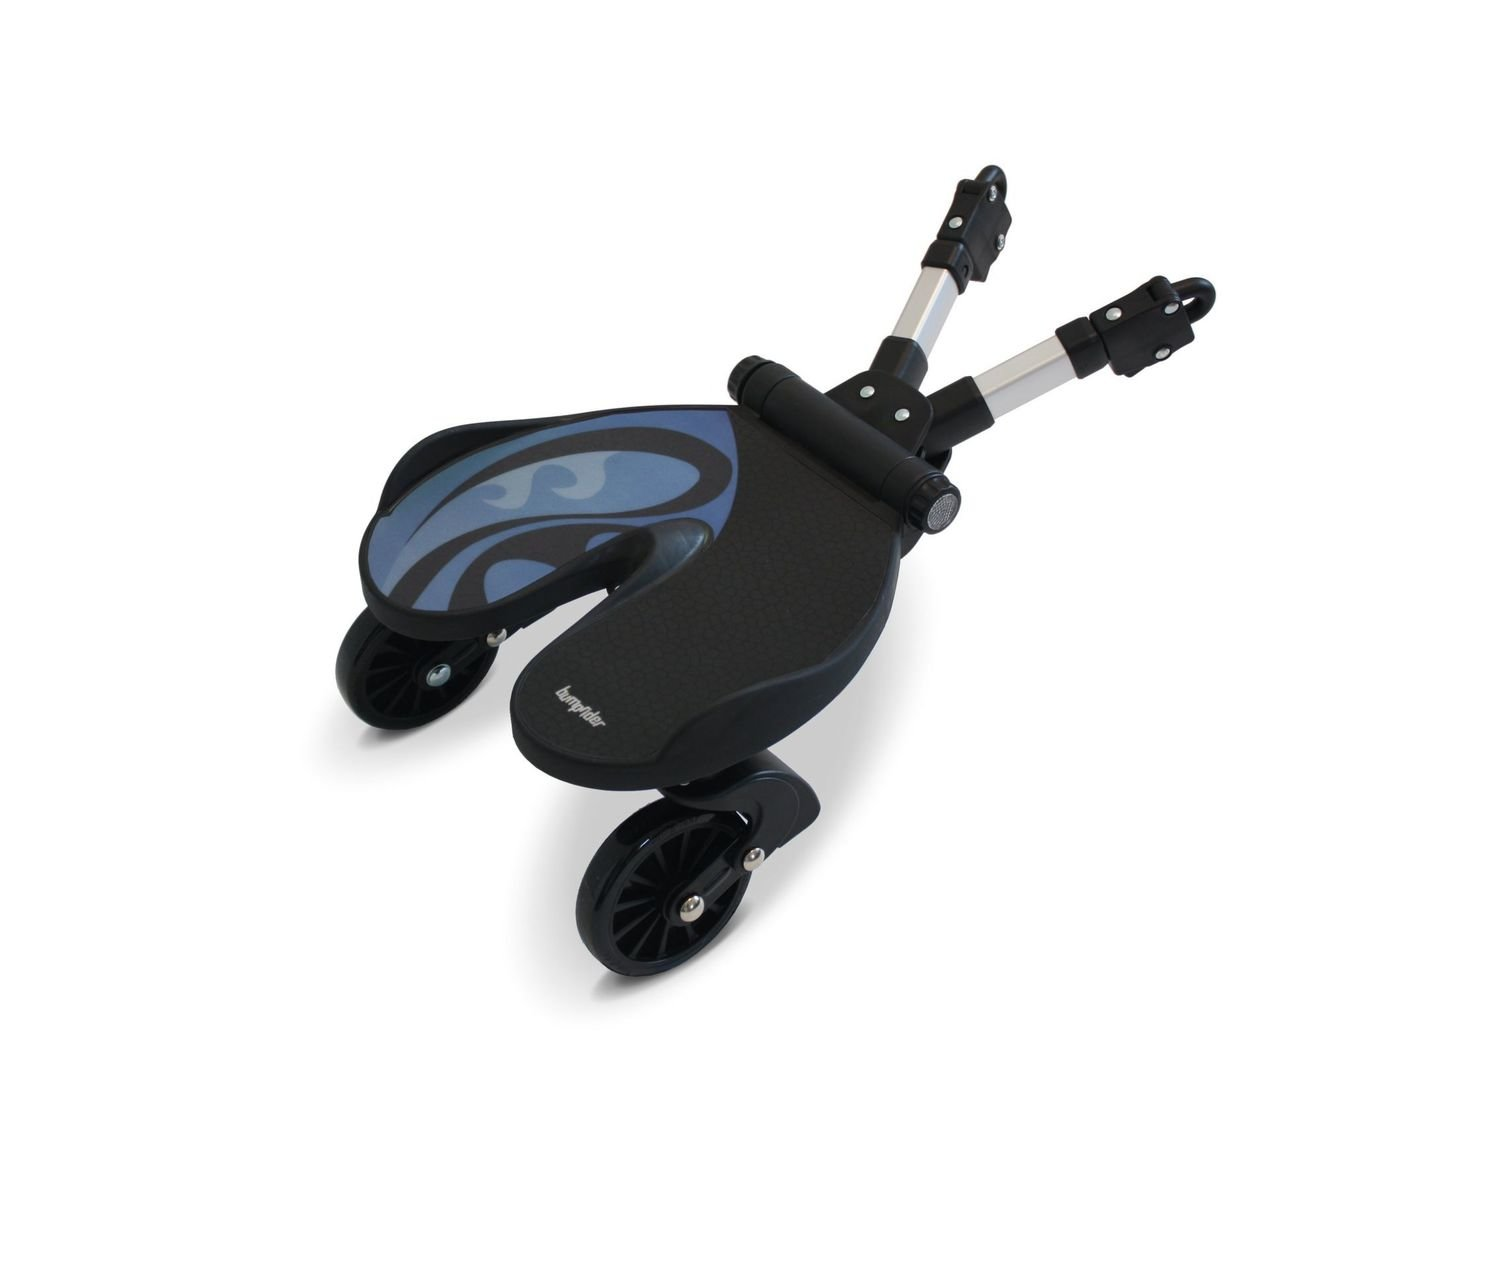 Bumprider stand-on board, buggy board, Swedish Technology Made In S.Korea - Blue